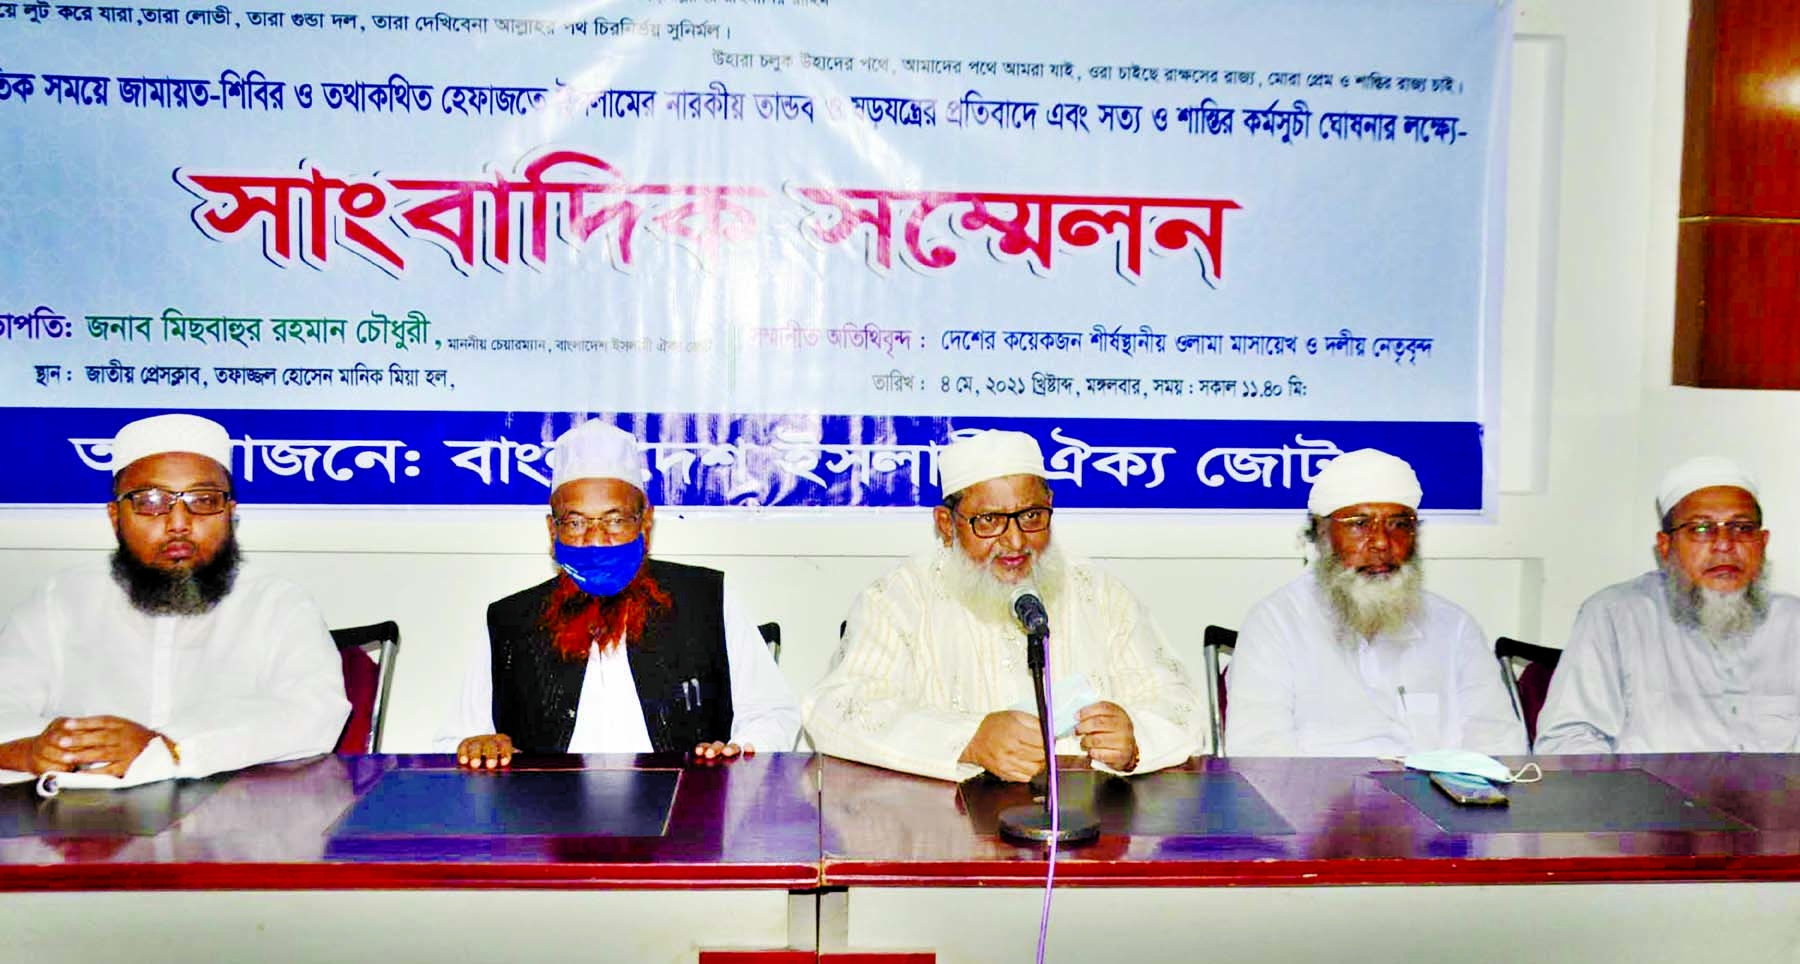 President of Bangladesh Islami Oikya Jote Misbahur Rahman Chowdhury speaks at a prèss conference organised by the jote at the Jatiya Press Club on Tuesday in protest against conspiracy hatched by Jamaat-Shibir & Hefazat-e- Islam and declaration of the party's truth and peace programme.